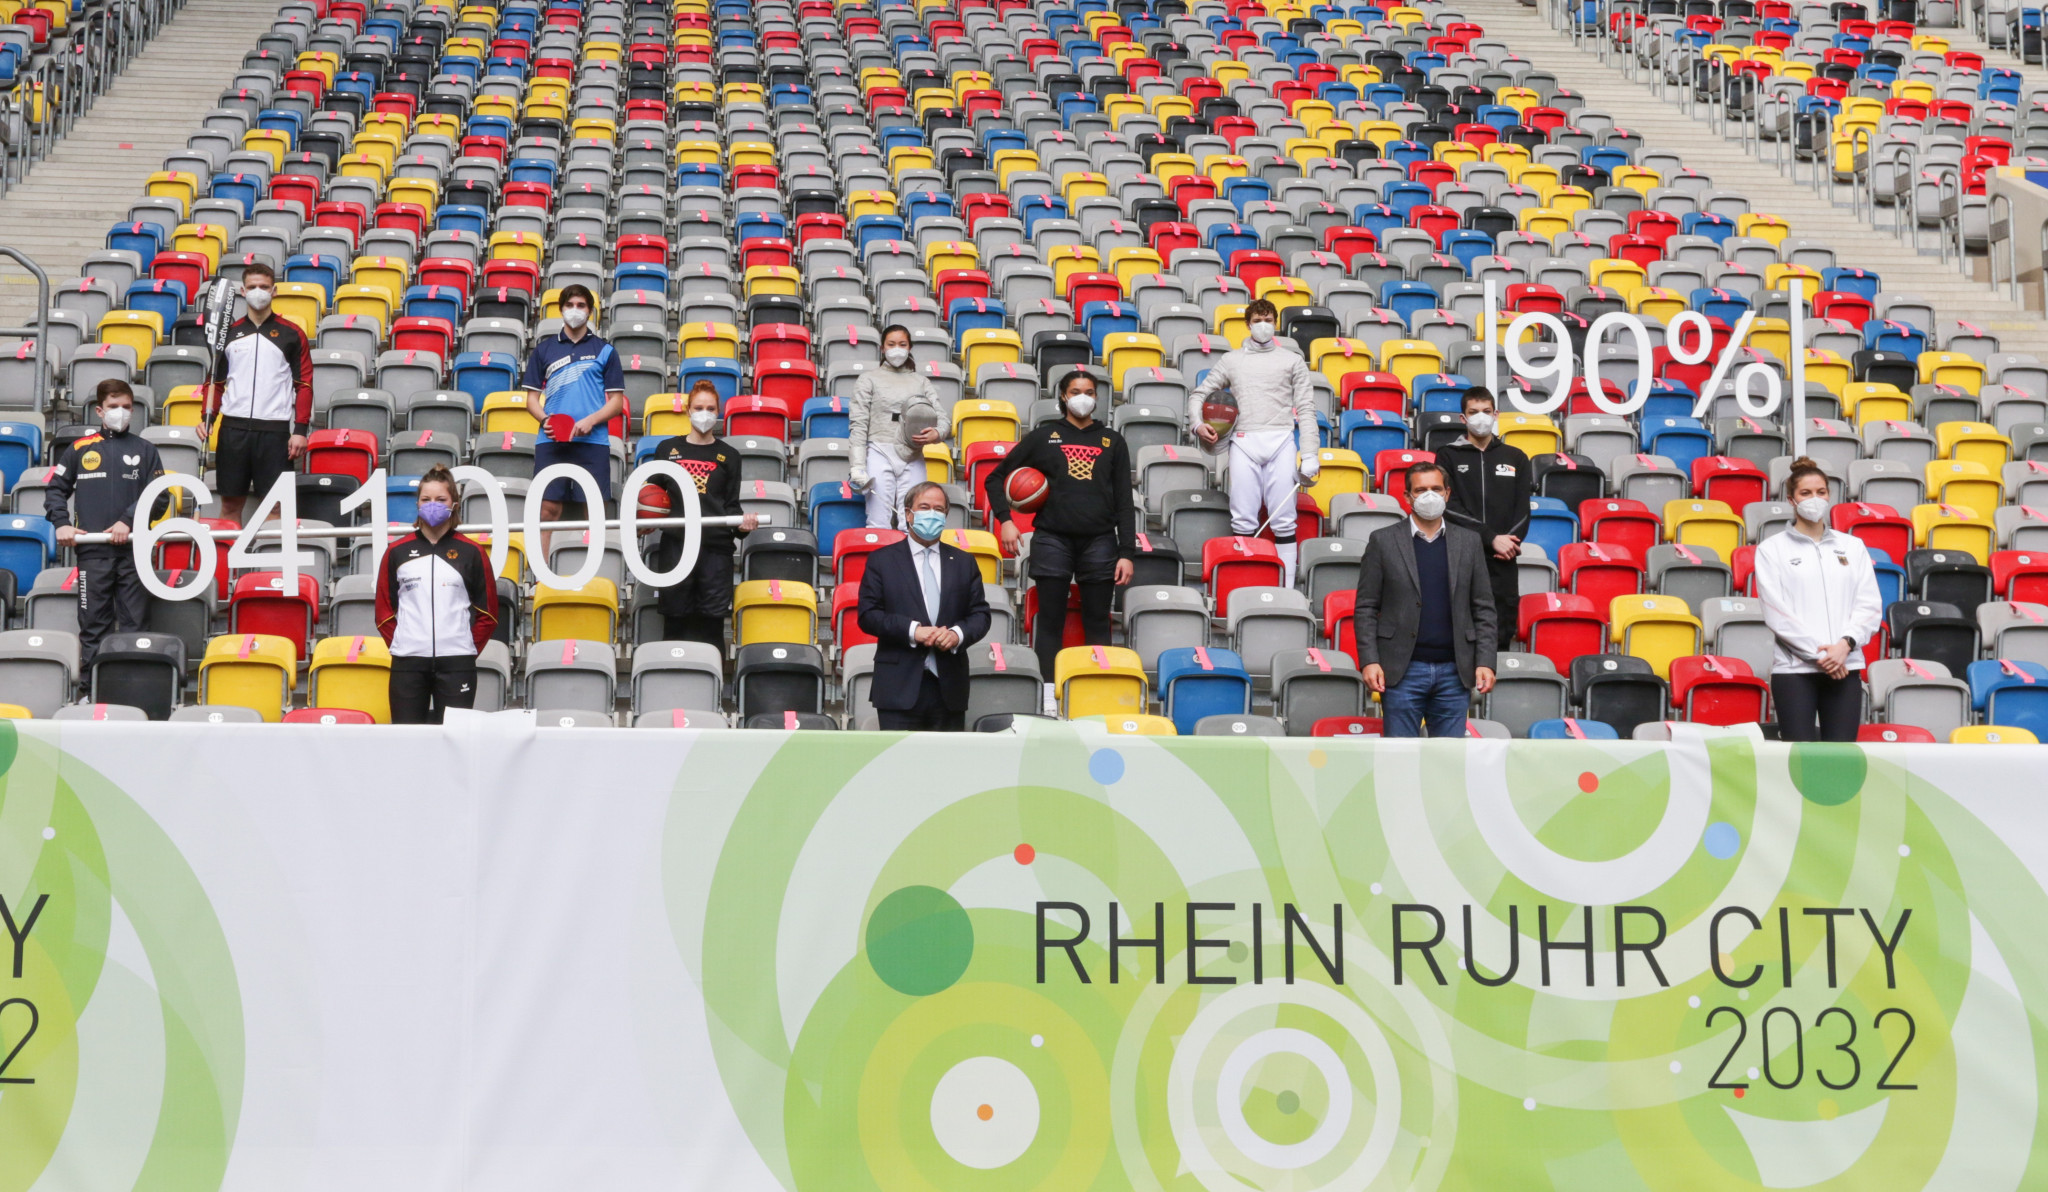 German officials unhappy over lack of transparency in 2032 Olympic bid process